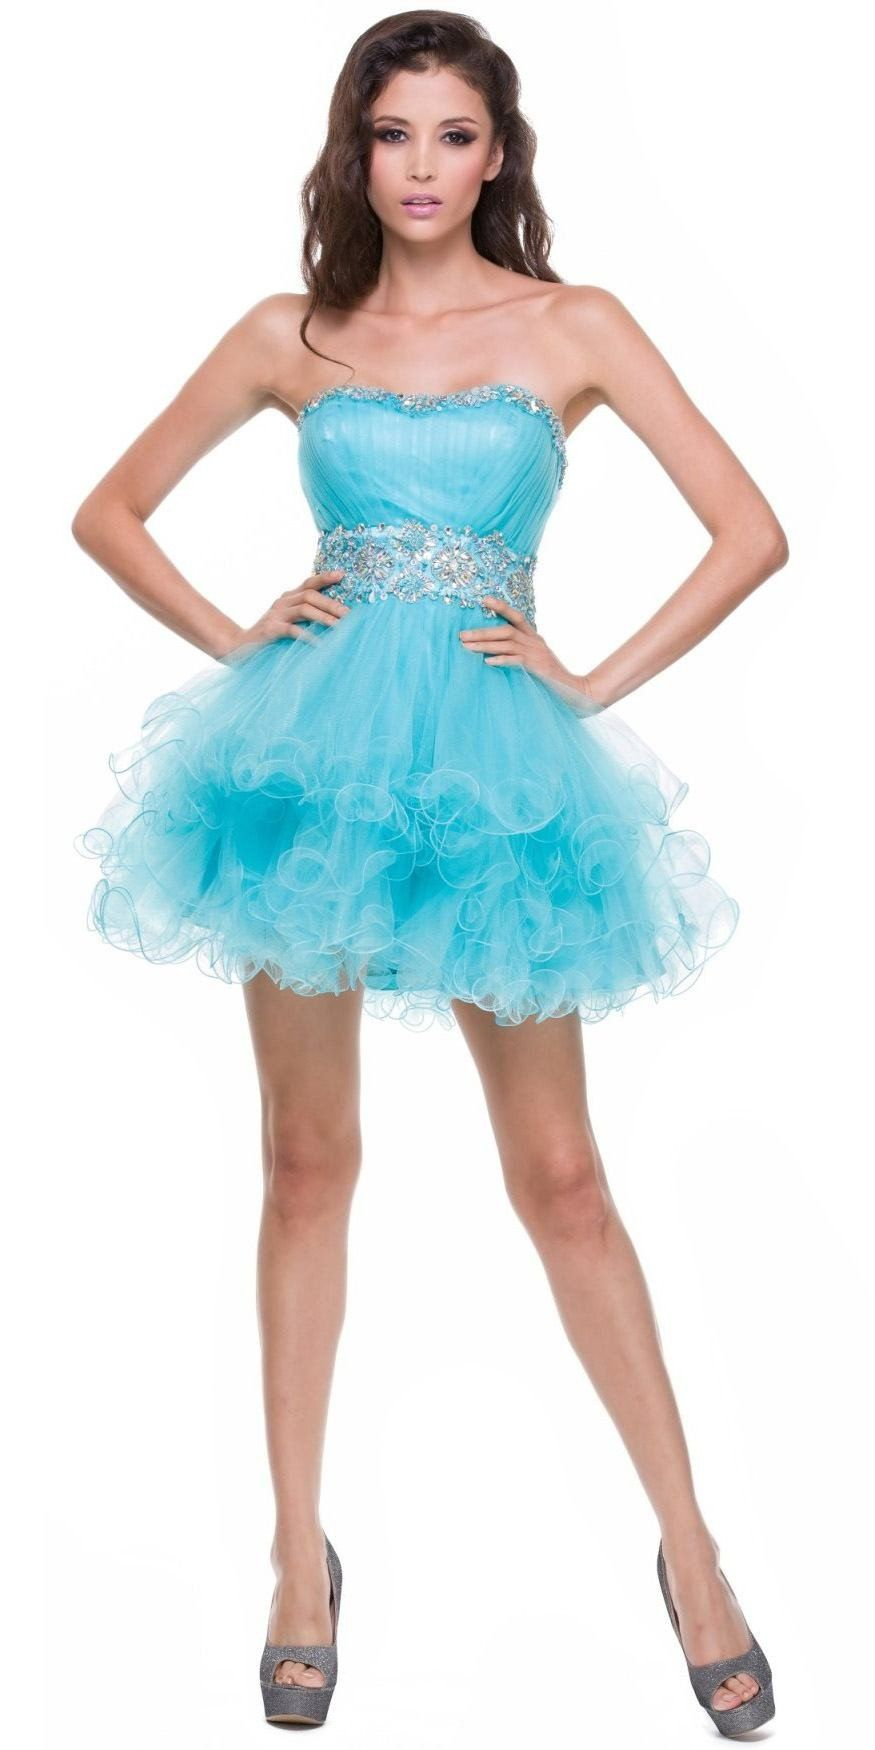 Strapless Sweetheart Silver Formal Dress Short Sequin Neckline Poofy ...